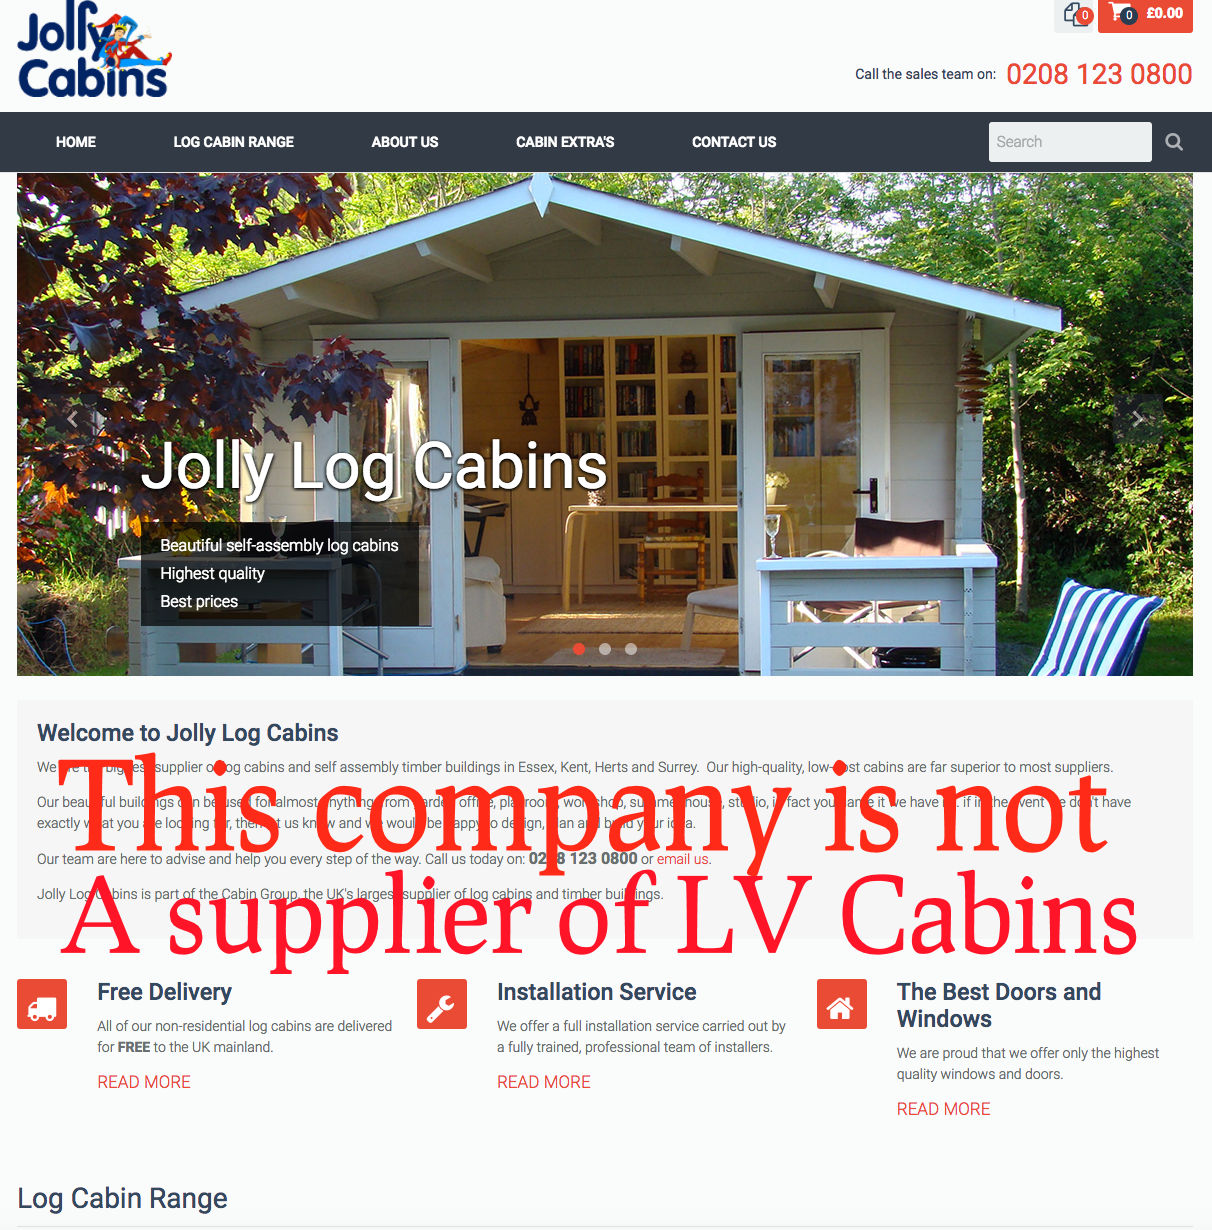 jolly cabins fraud